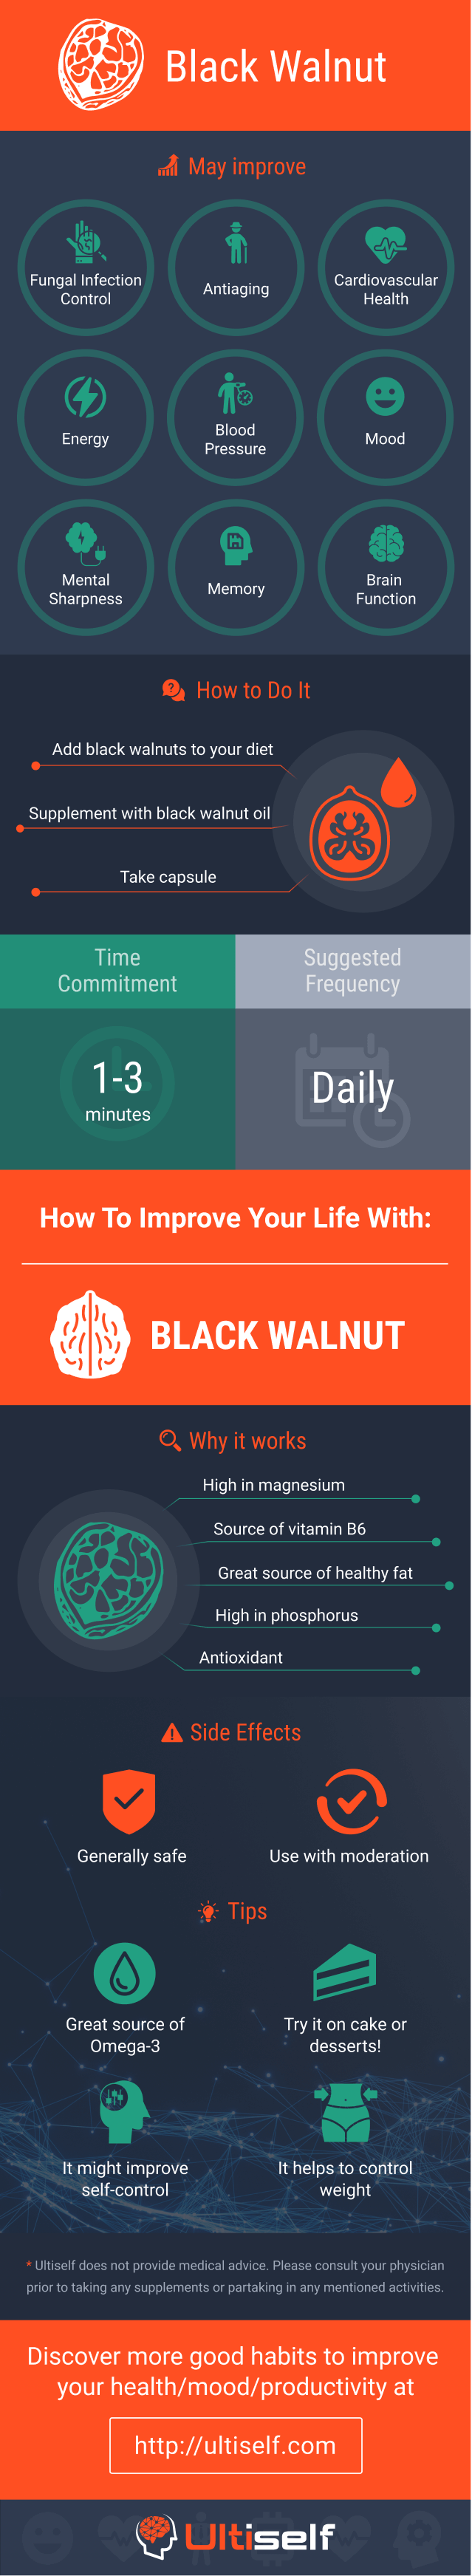 Black Walnut infographic